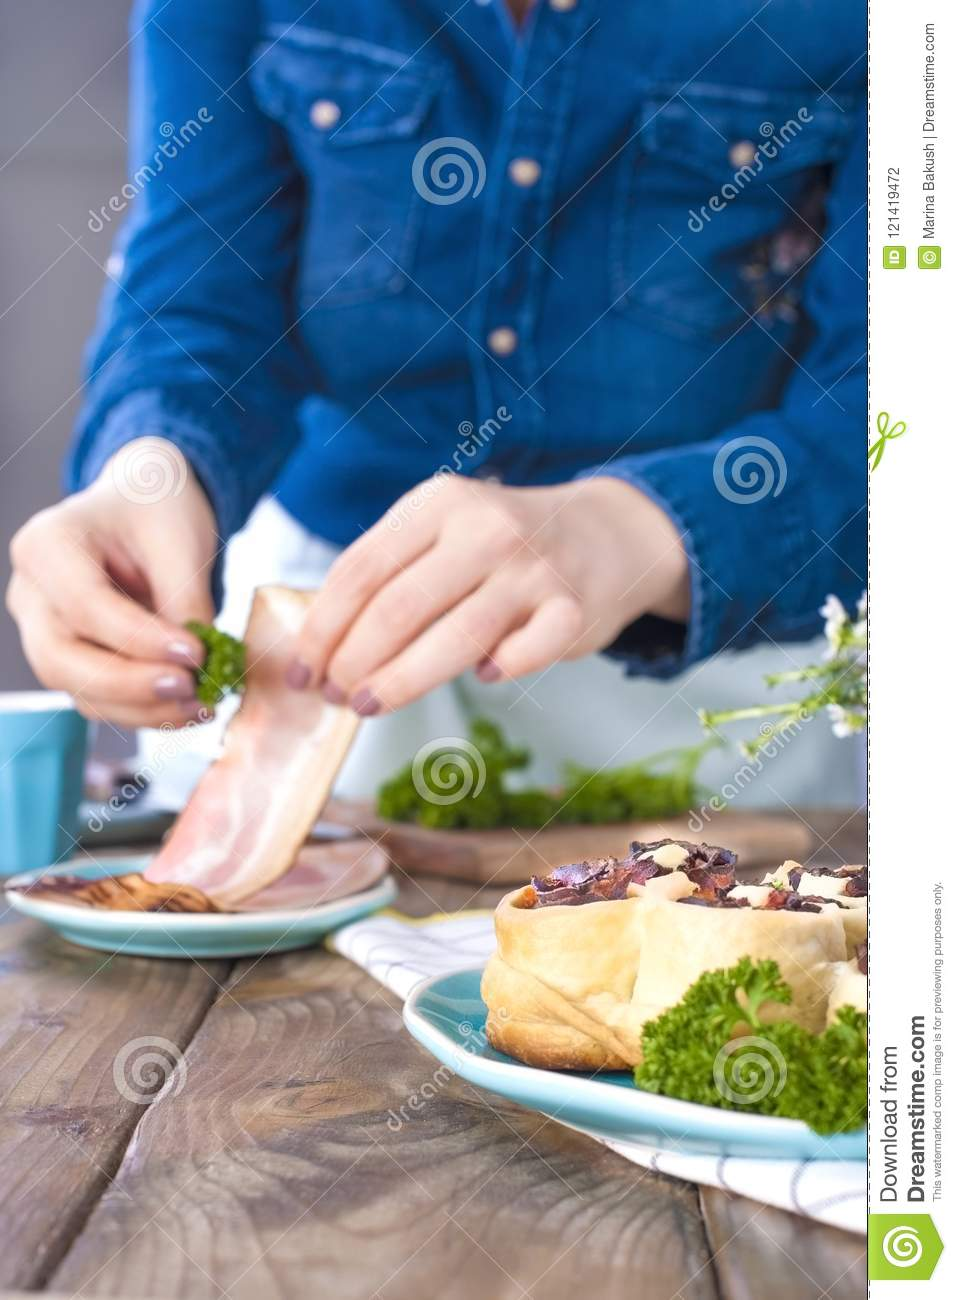 A girl in jeans clothes prepares a lunch of bacon and dough, with fresh herbs. Brown wooden background. Kramic dishes of blue cet.